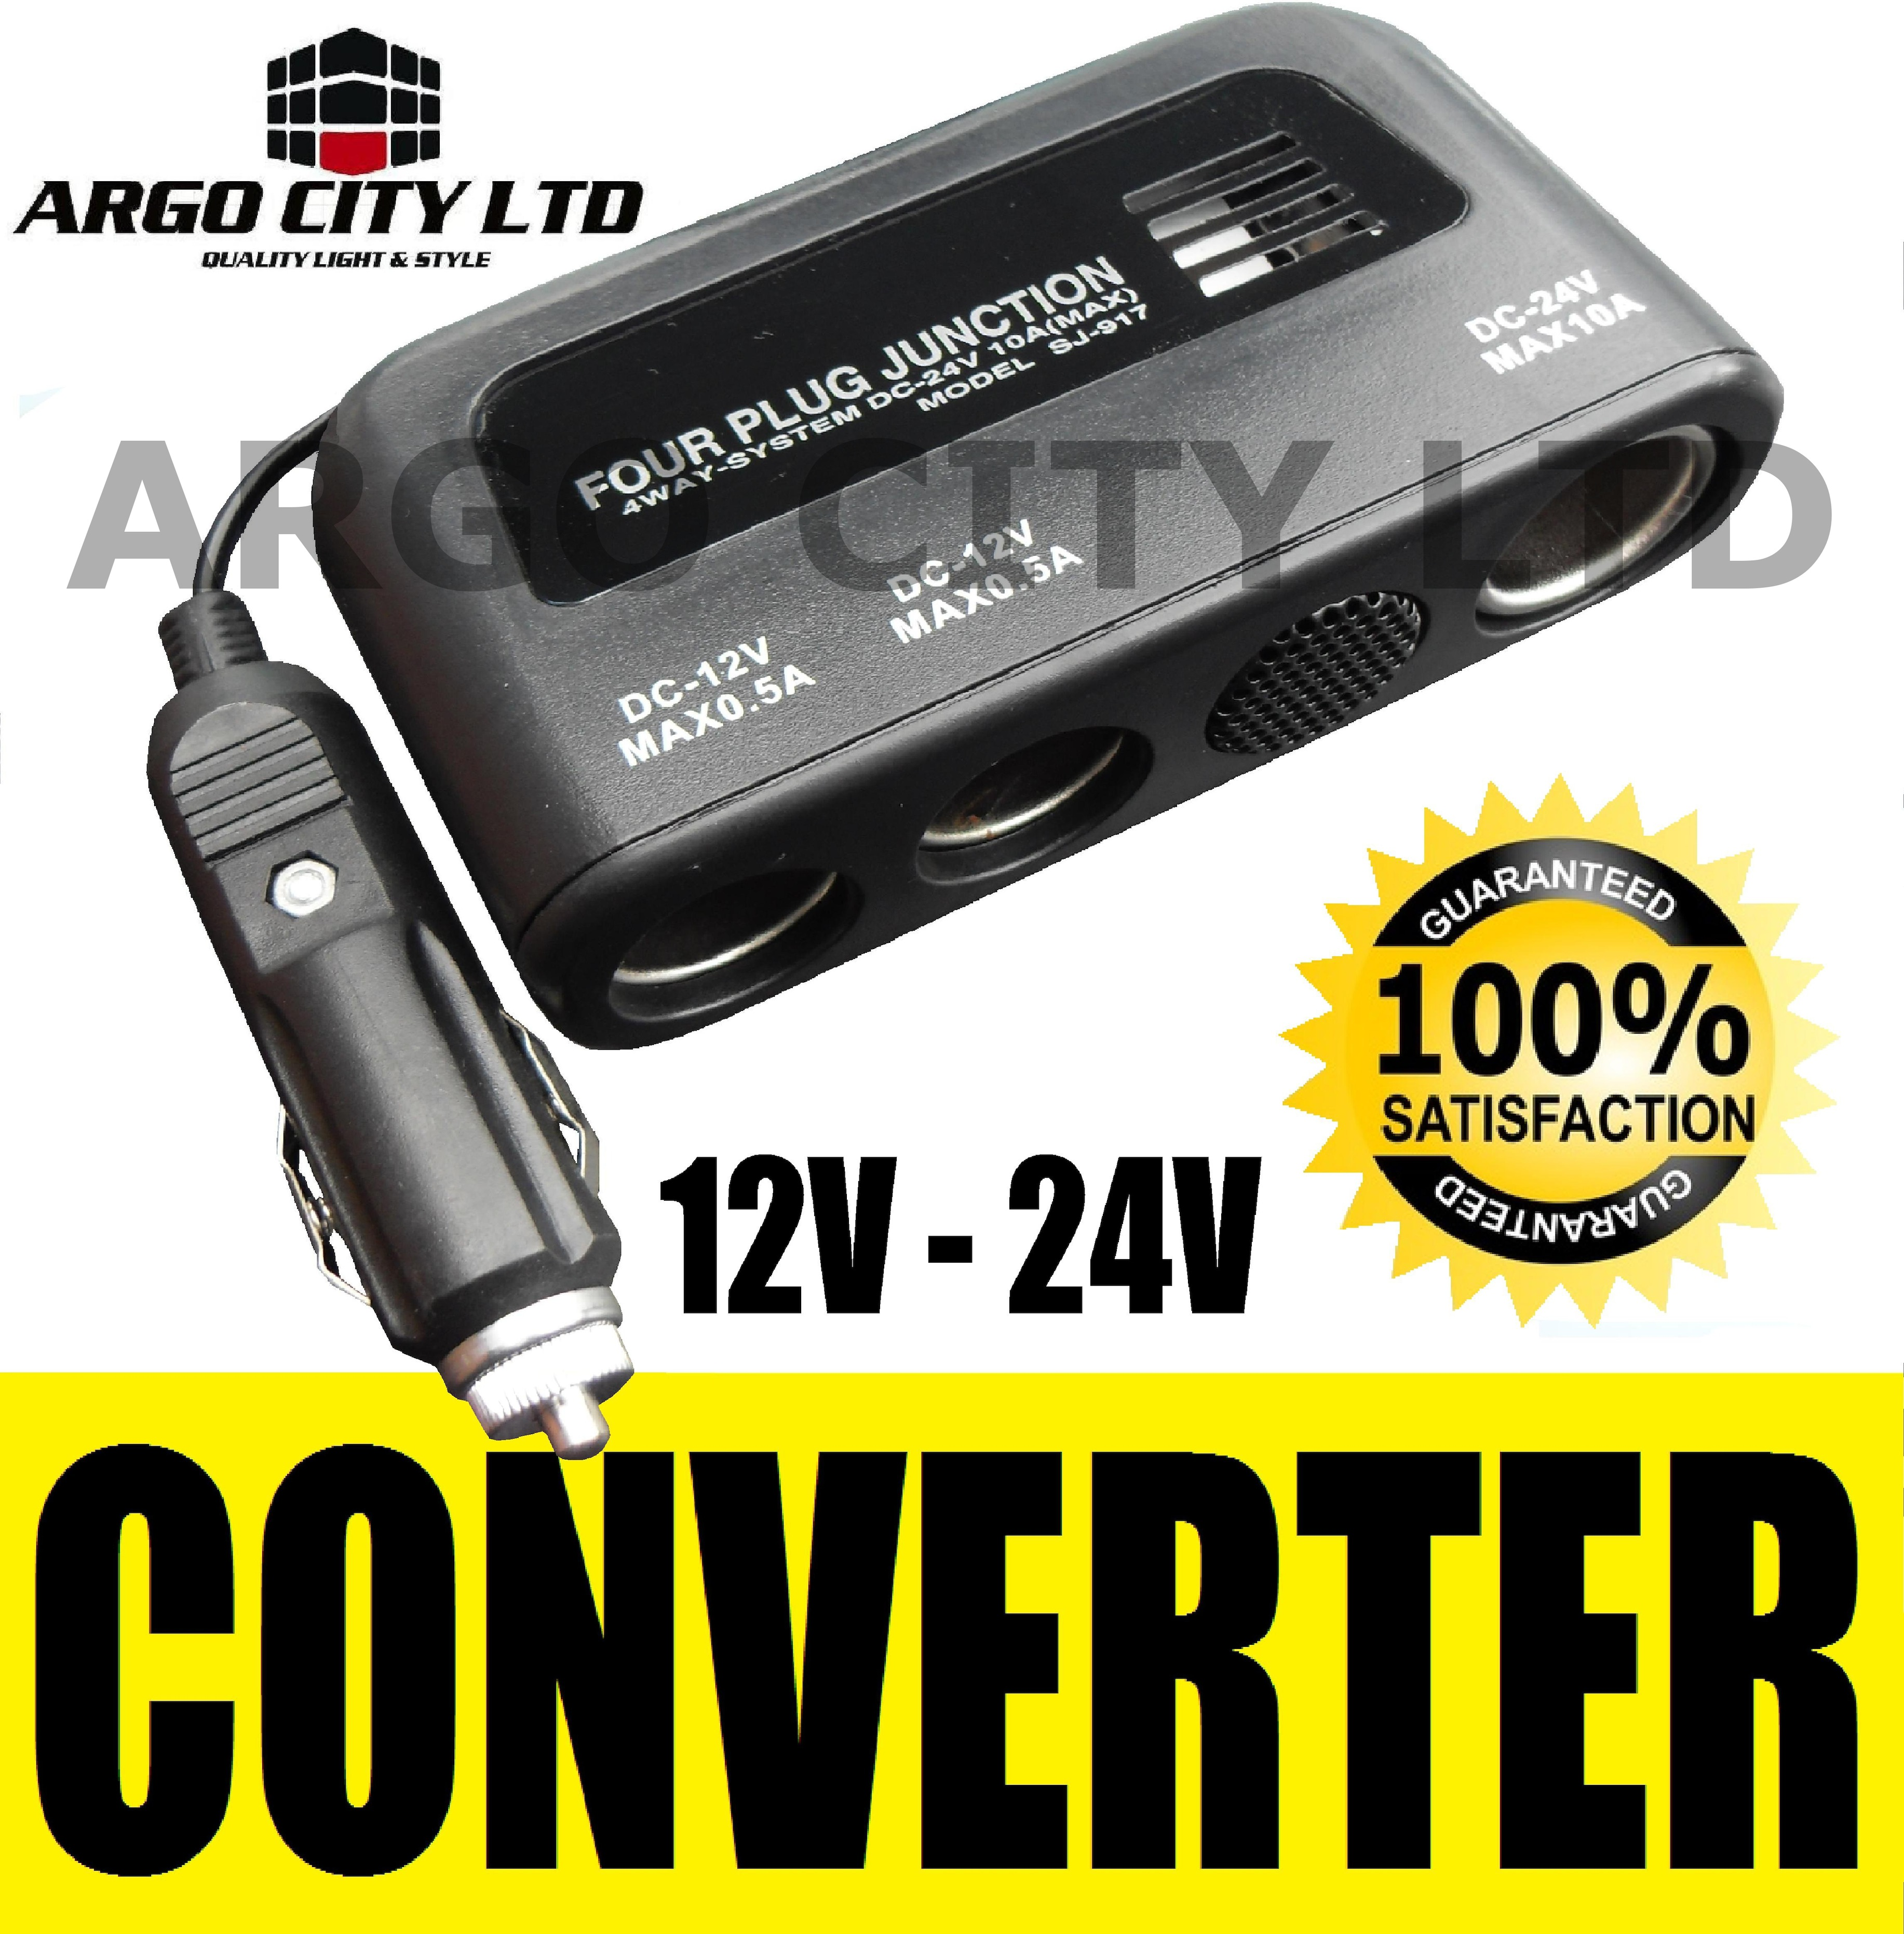 DC CONVERTER CAR VAN 12V 24V 4WAY CIGARETTE SOCKET PLUG BMW 3 SERIES COMPACT